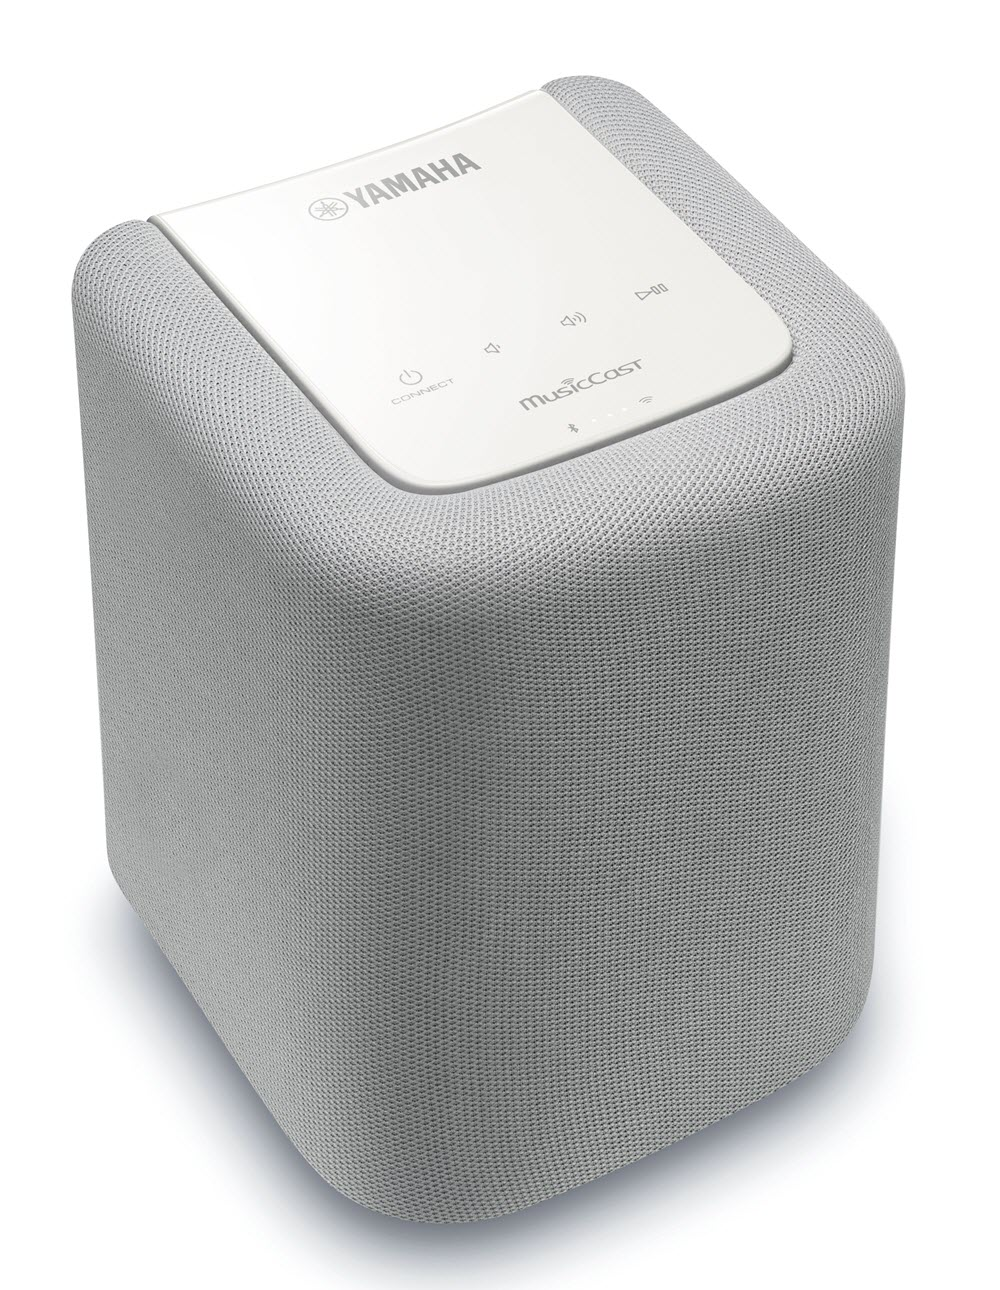 Small rectangulare speaker in a light color with rounded corners.